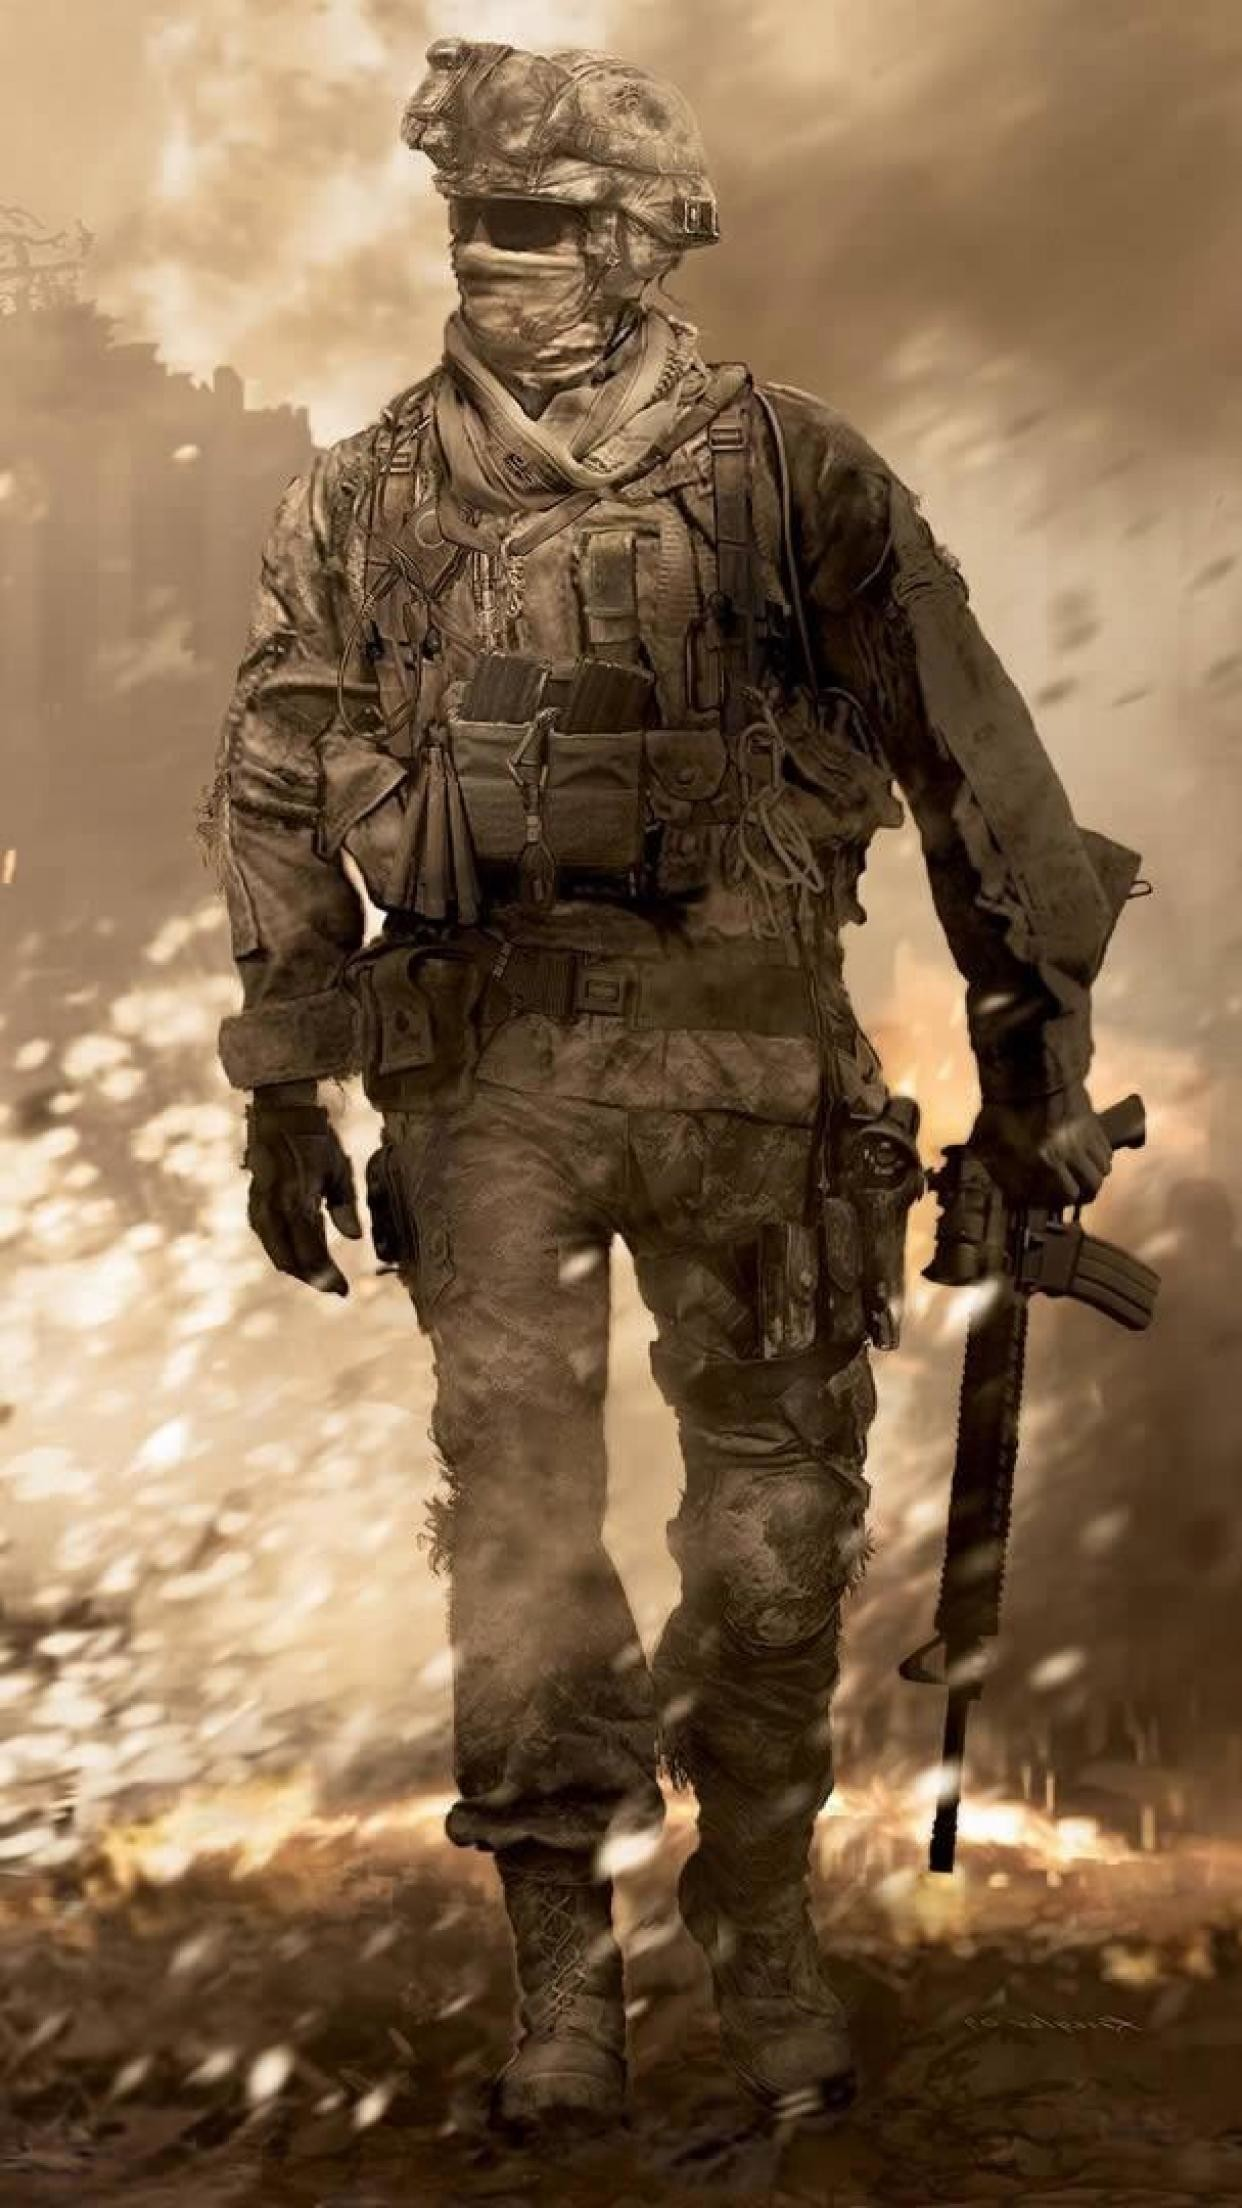 Mw2 Wallpaper (78+ images)